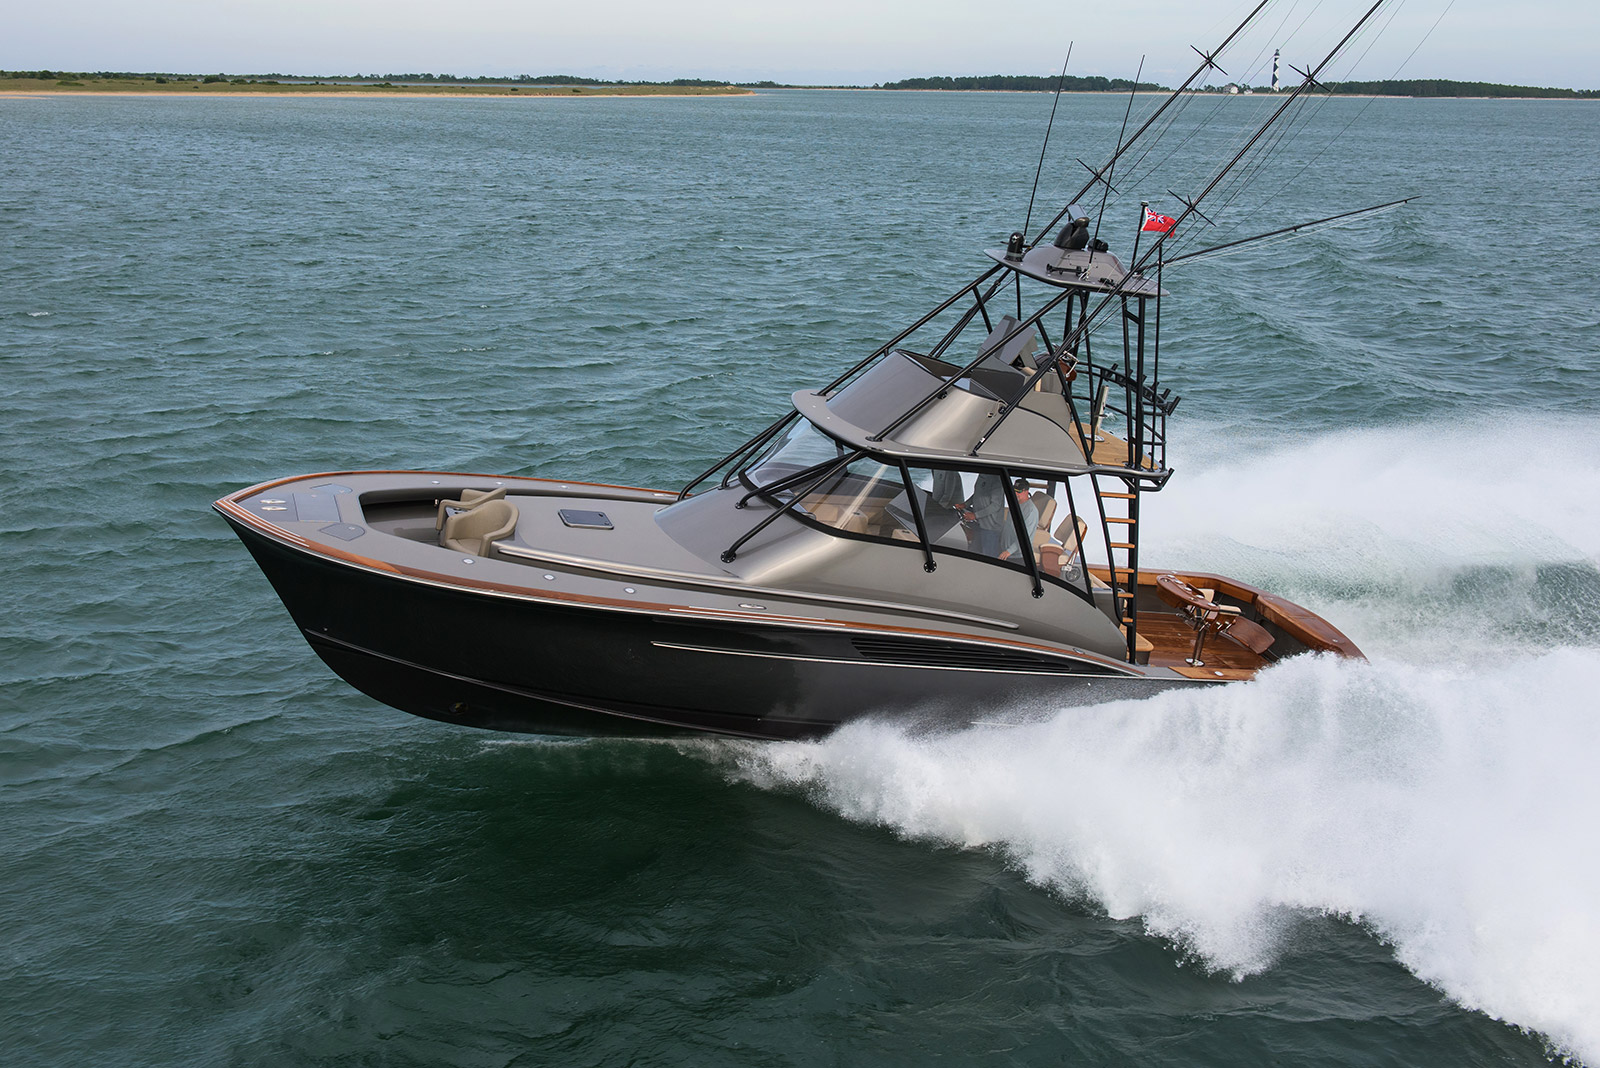 46' Grander - Jarrett Bay Boatworks